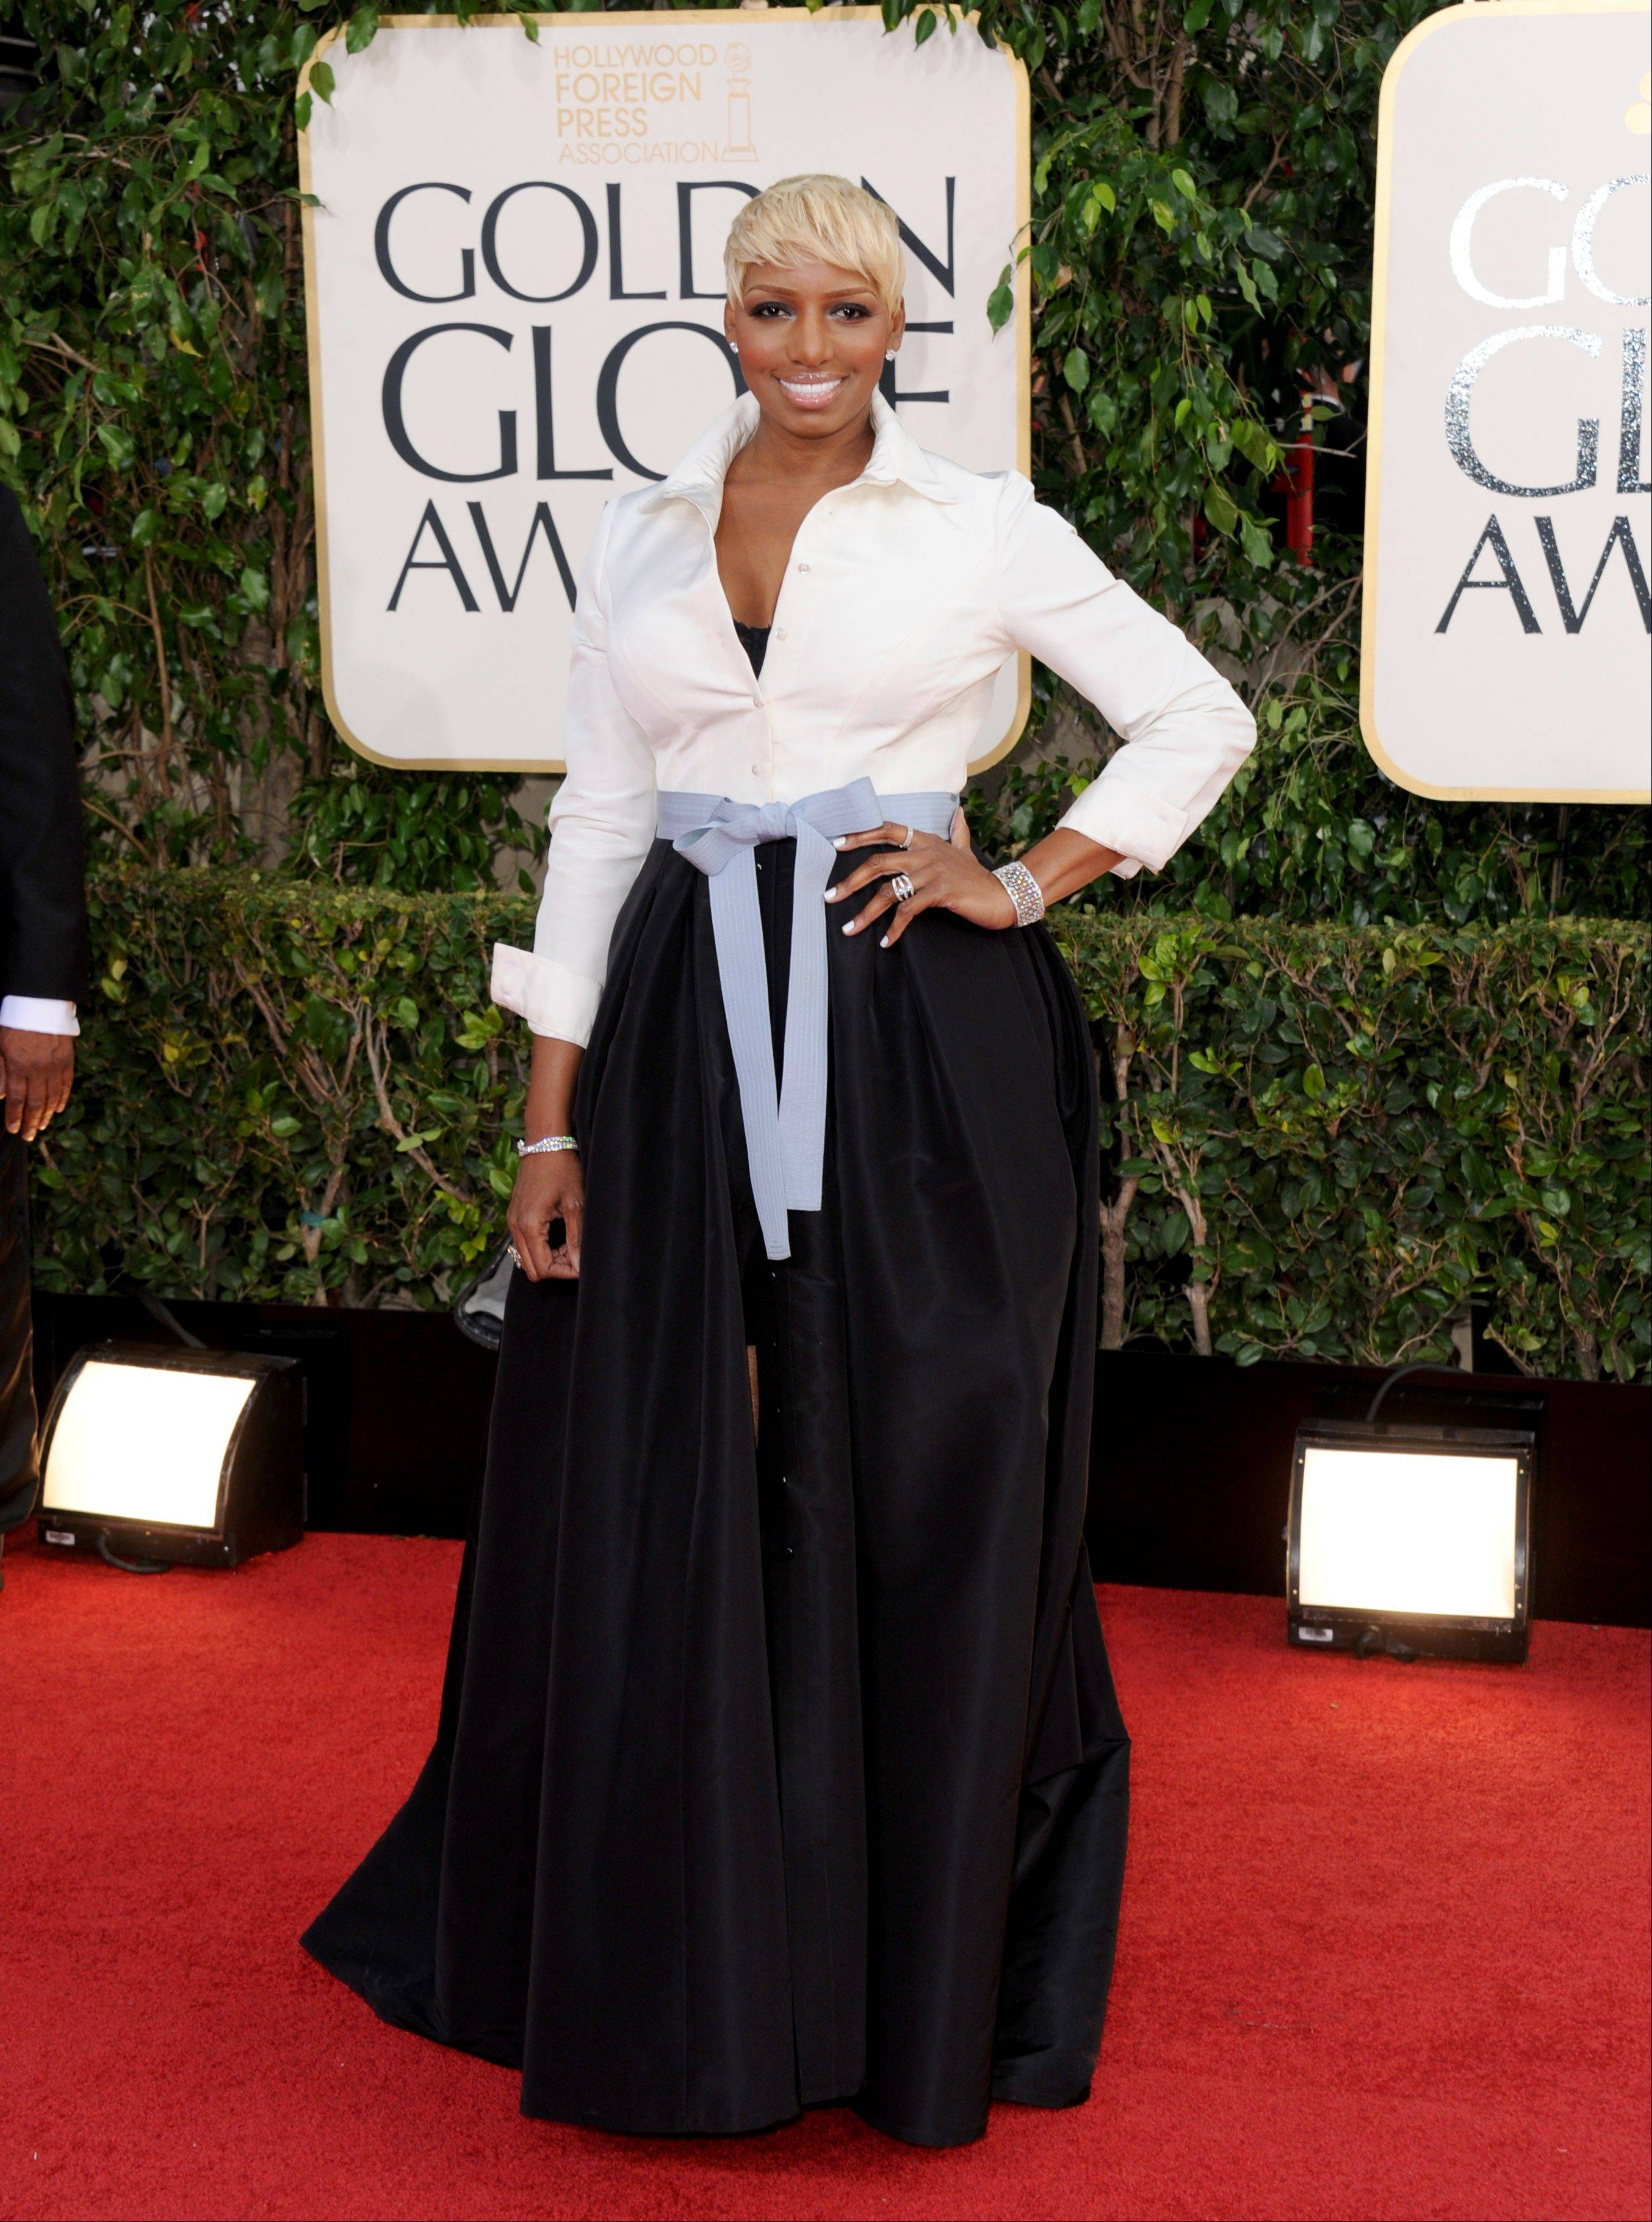 Actress and TV personality NeNe Leakes arrives at the 70th Annual Golden Globe Awards at the Beverly Hilton Hotel on Sunday Jan. 13, 2013, in Beverly Hills, Calif.